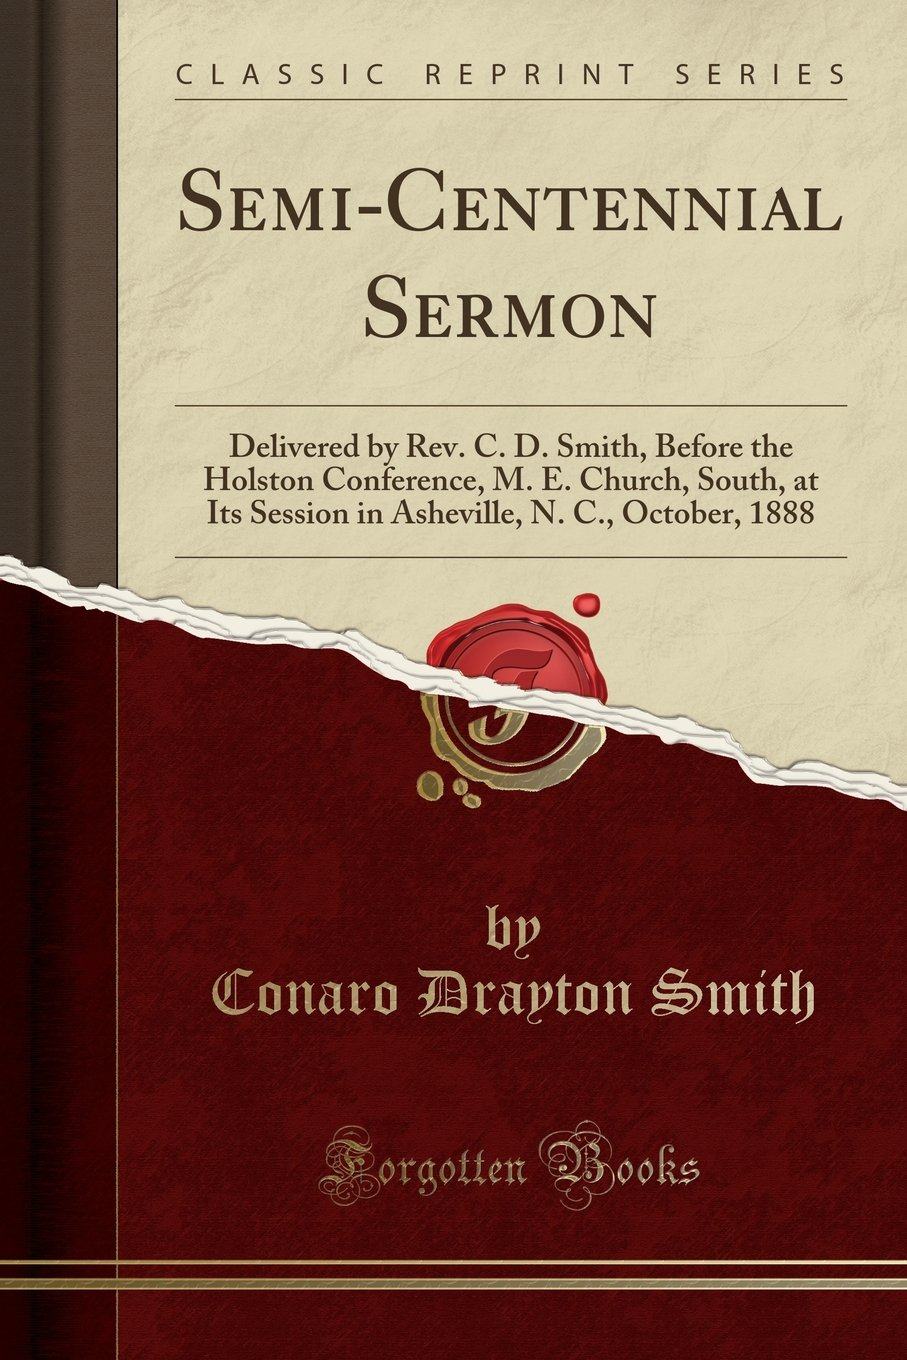 Read Online Semi-Centennial Sermon: Delivered by Rev. C. D. Smith, Before the Holston Conference, M. E. Church, South, at Its Session in Asheville, N. C., October, 1888 (Classic Reprint) PDF ePub ebook